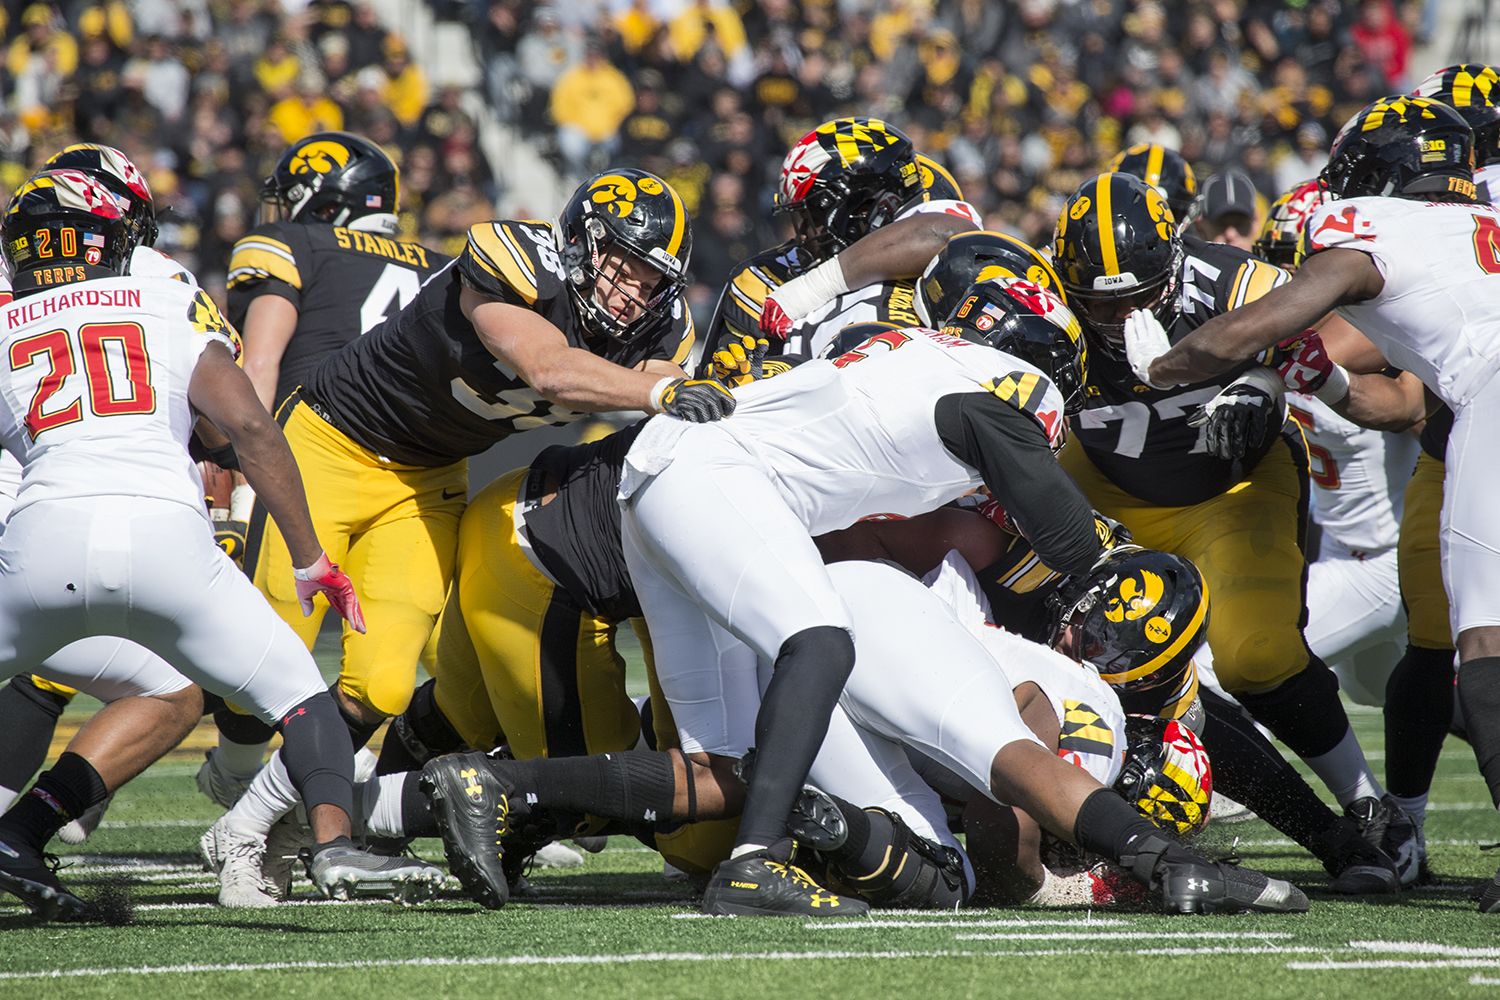 T.J+Hockenson+%2838%29+goes+for+a+Terrapin+during+the+Iowa+vs.+Maryland+game+at+Kinnick+stadium+on+Saturday+Oct.+20%2C+2018.+The+Hawkeyes+defeated+the+Terrapins+23-0.+